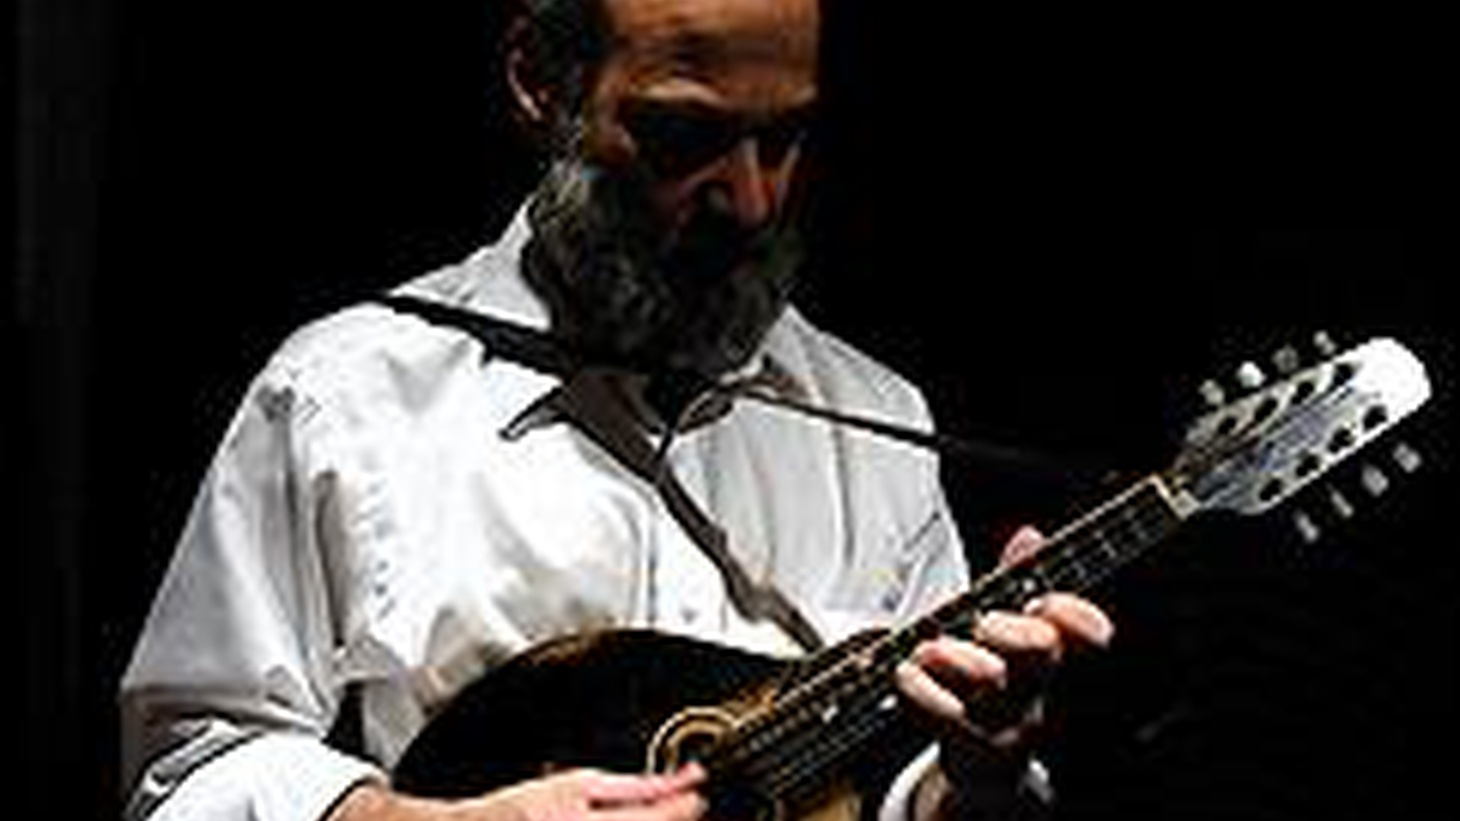 From bluegrass mandolin to klezmer clarinet--that's just part of the journey musician Andy Statman has taken. Independent producer Jon Kalish guides us through a musical and spiritual odyssey in this original documentary.